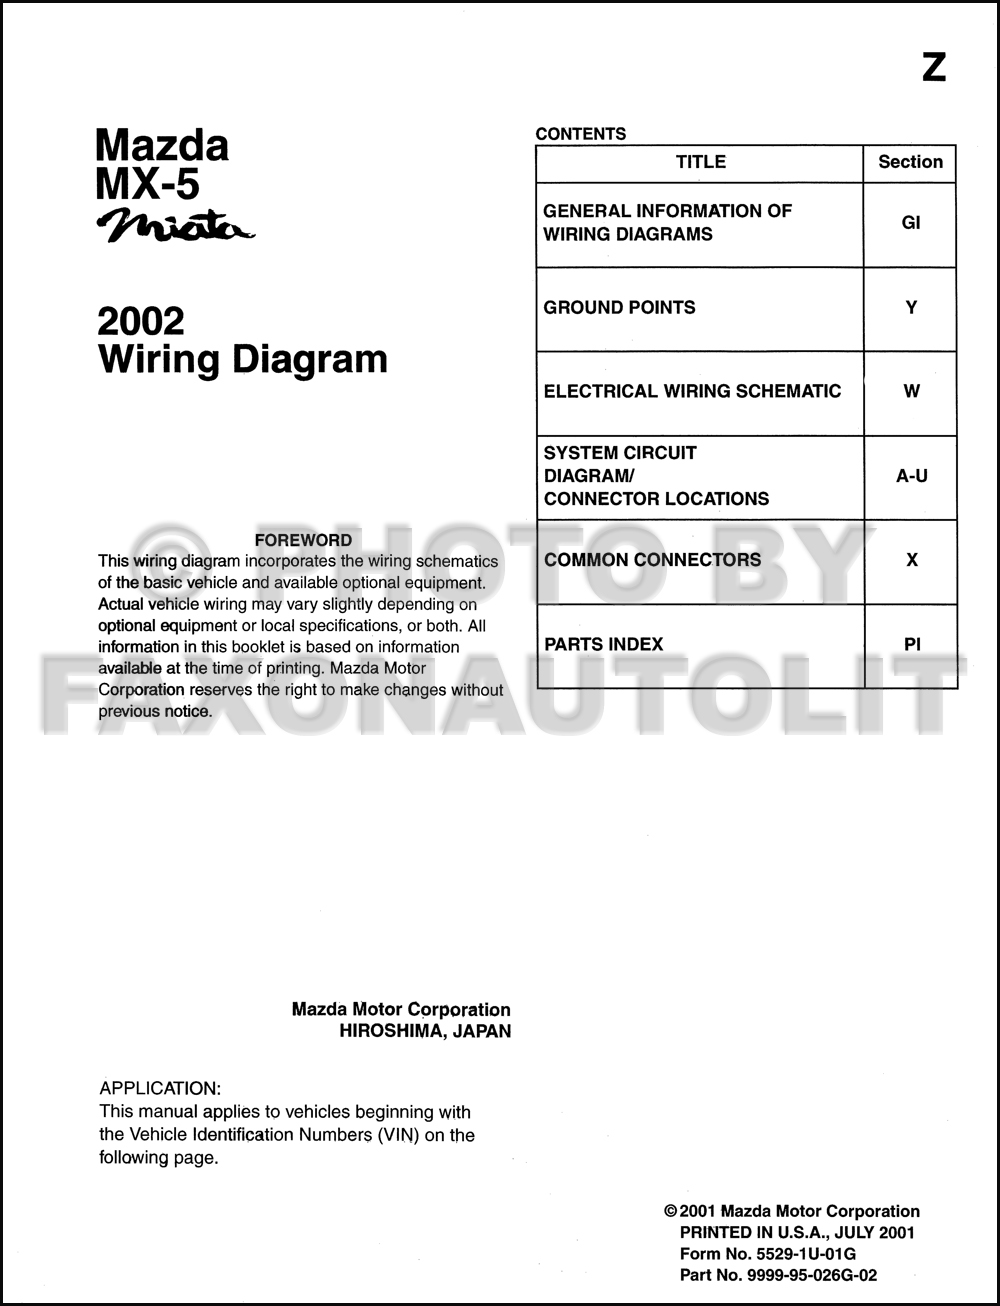 2002 Mazda MX-5 Miata Wiring Diagram Manual Original. click on thumbnail to  zoom